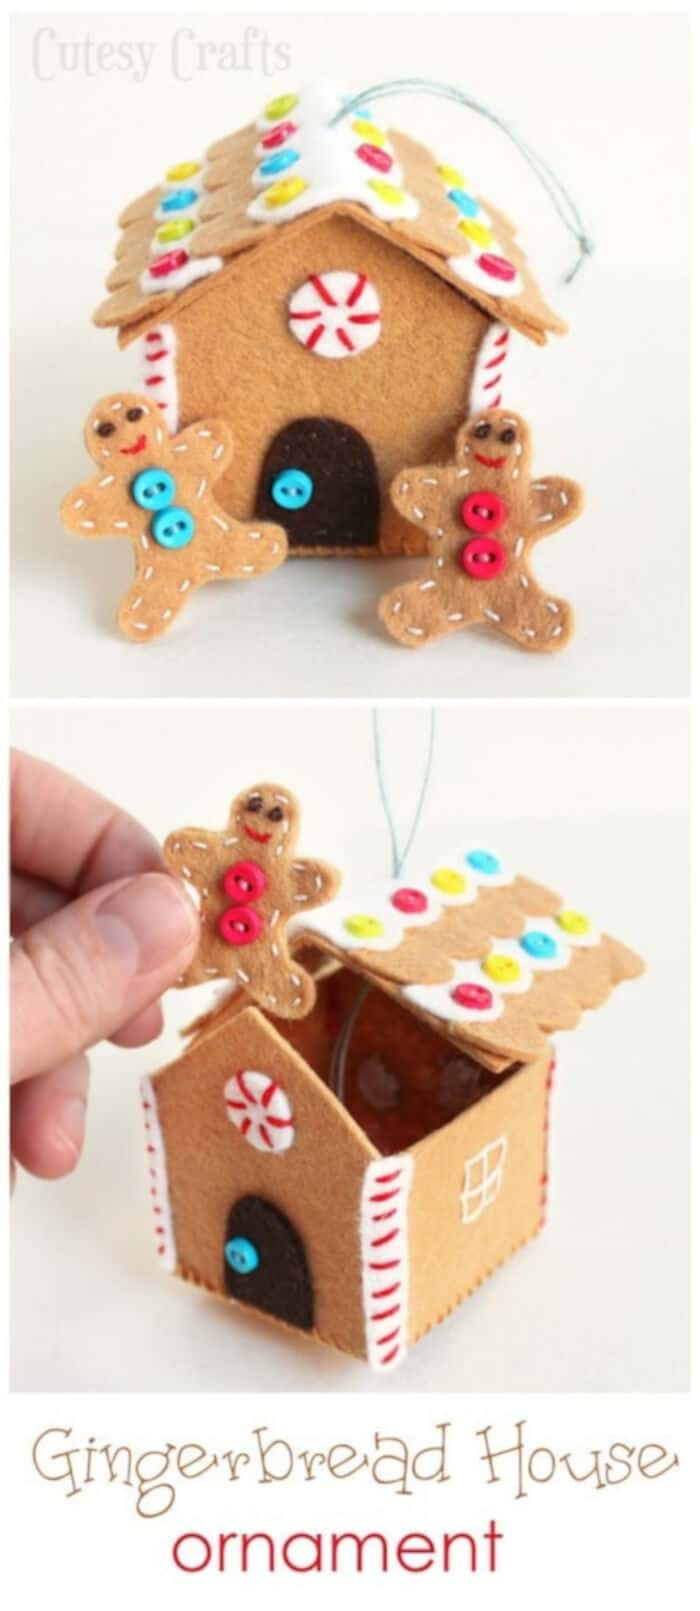 Felt Gingerbread House Ornament by Cutesy Crafts